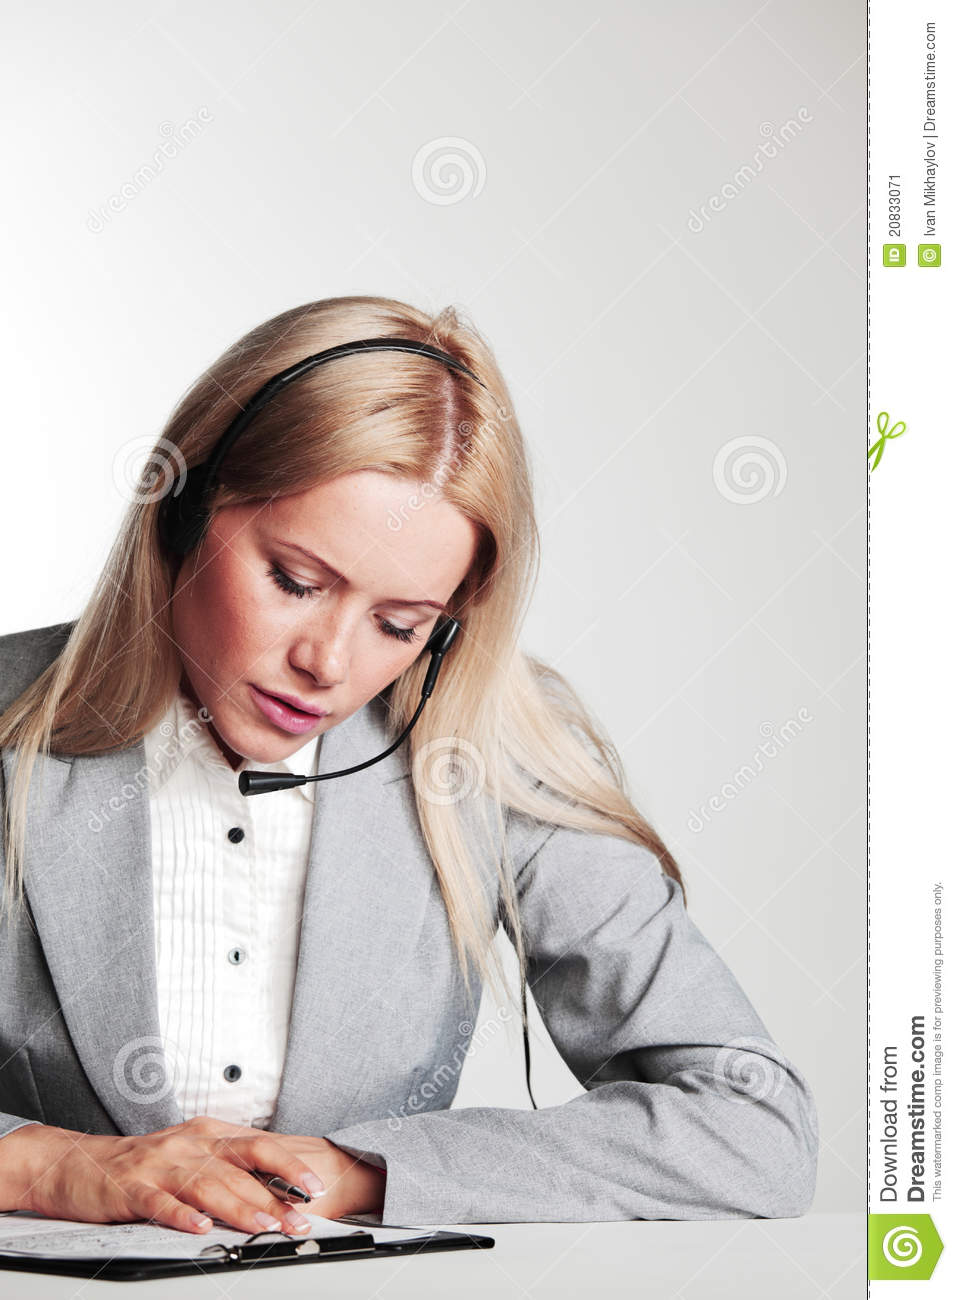 essay women in business Fabulous, easy paper ideas for high school or college essays  should women  get plastic surgery to make themselves have a better self-image does playing   will newspapers go out of business or become only digital.